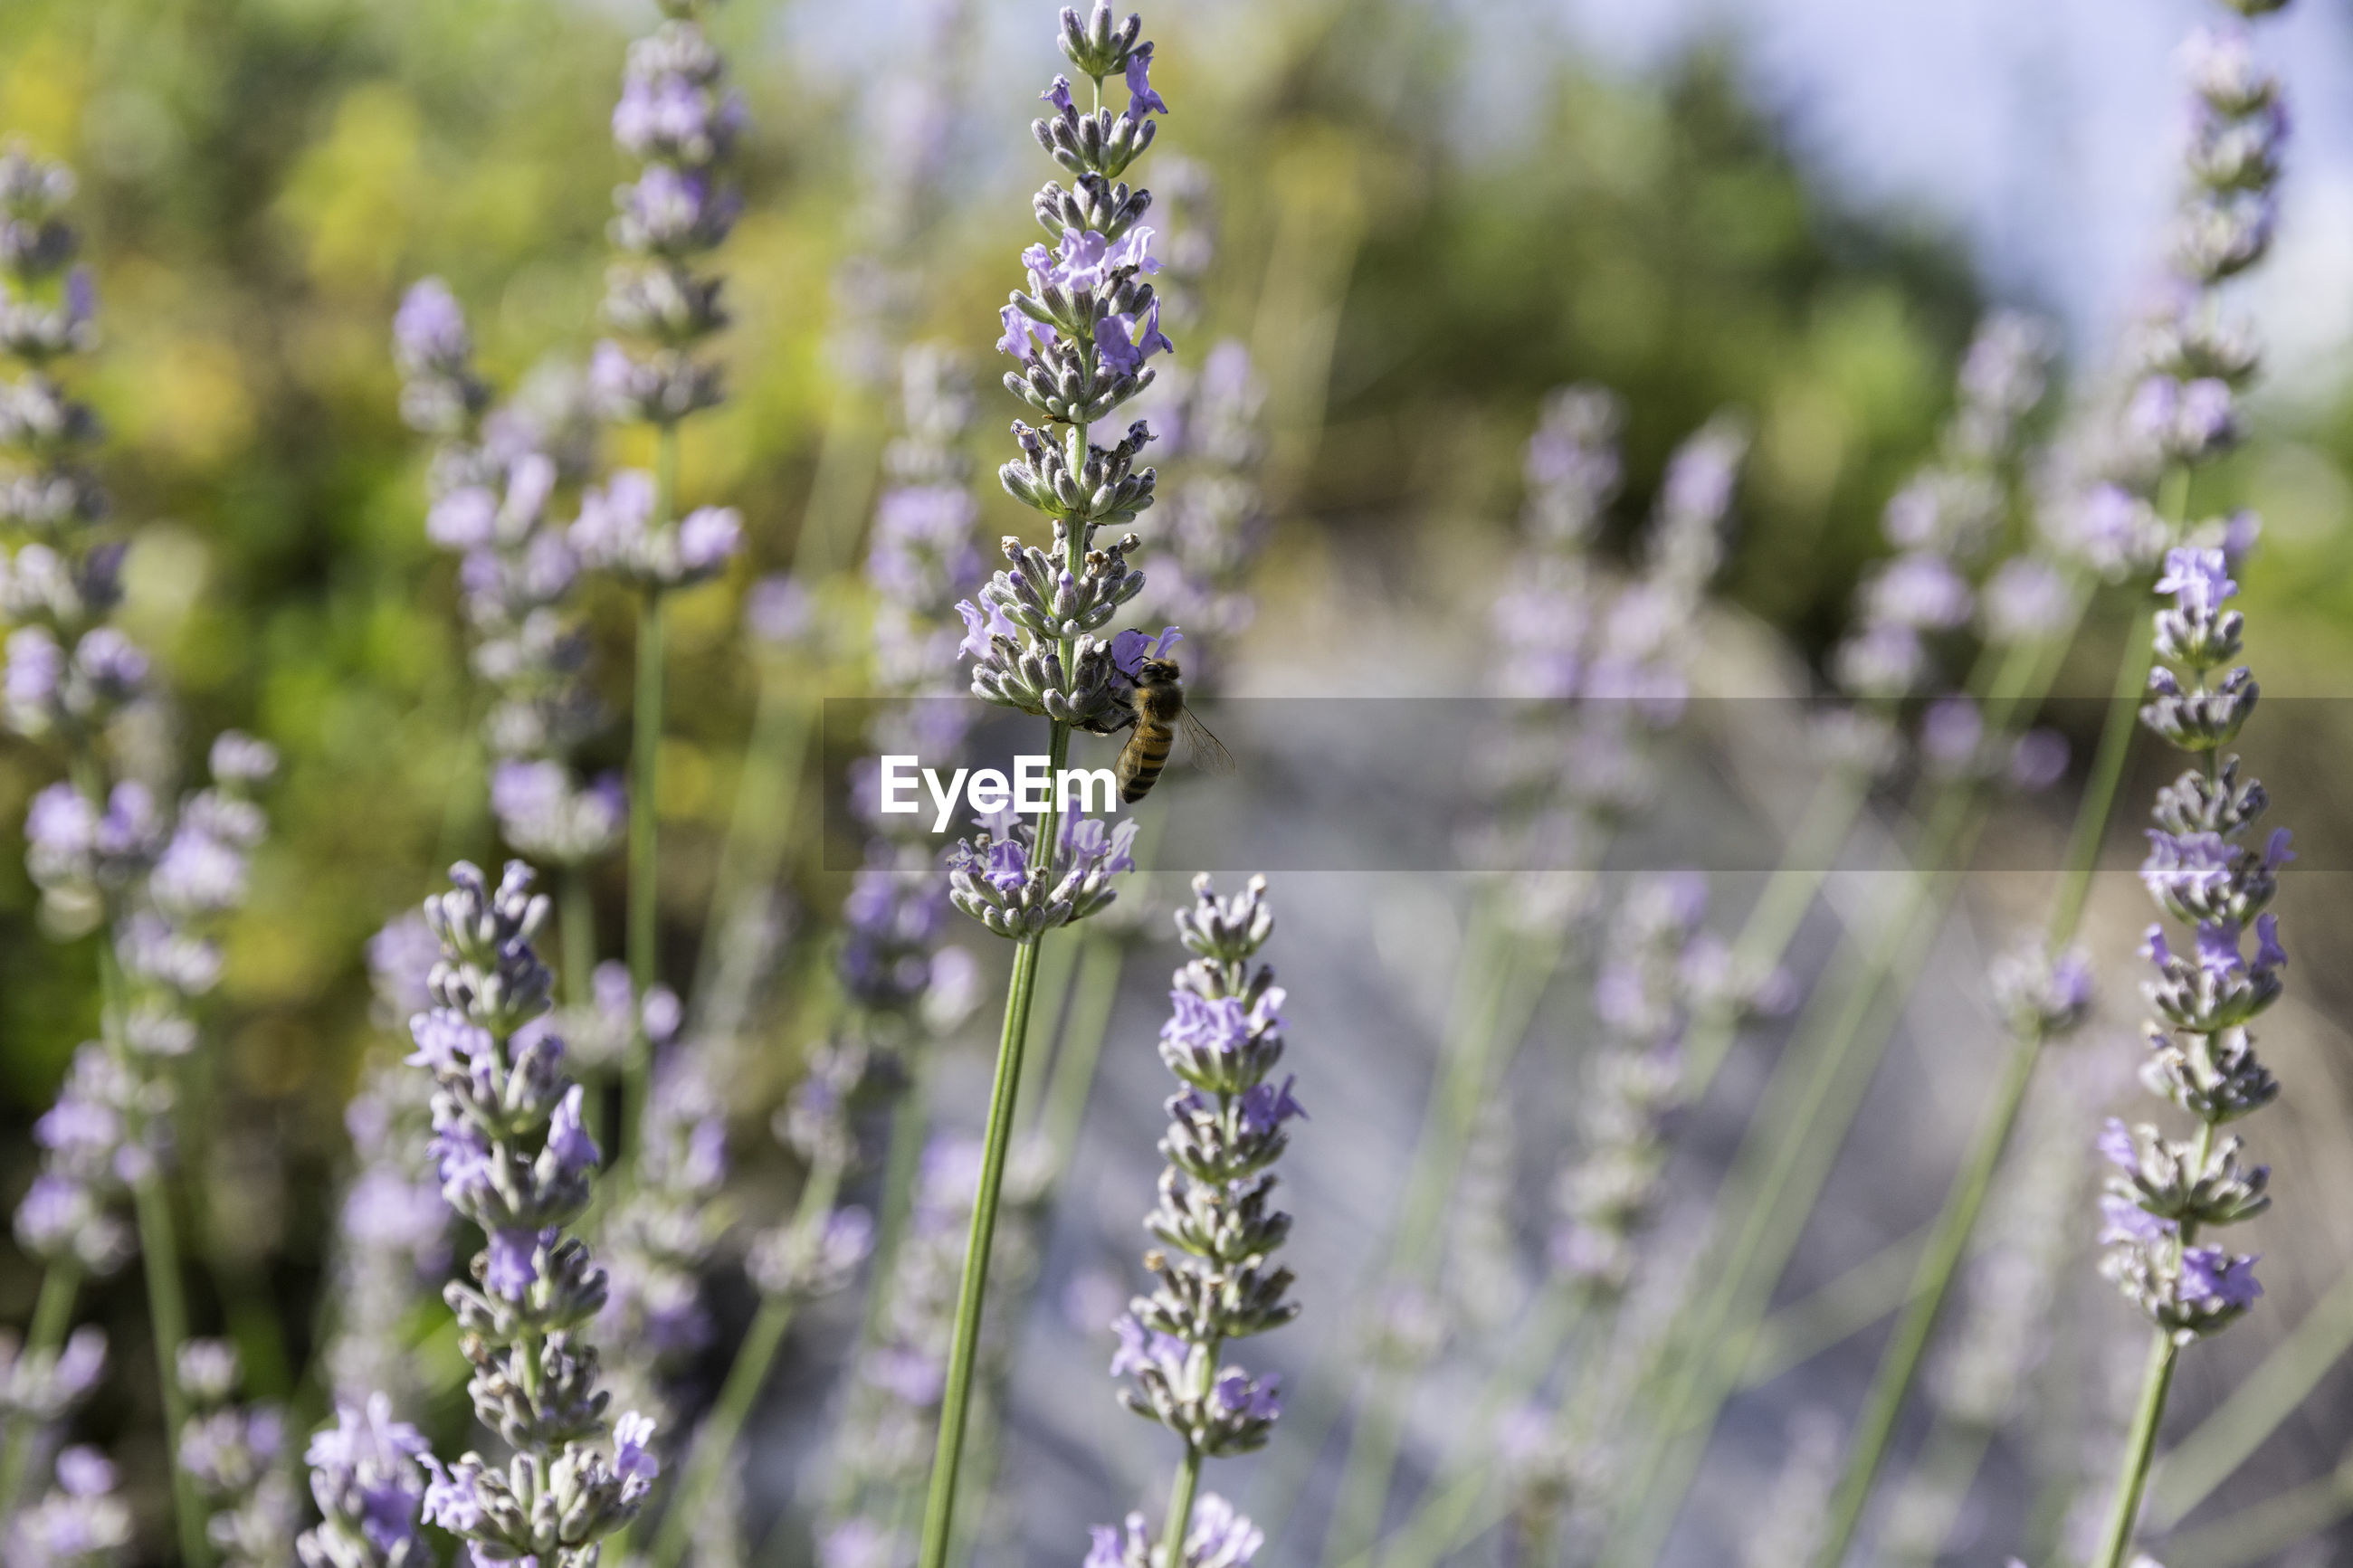 CLOSE-UP OF INSECT ON LAVENDER